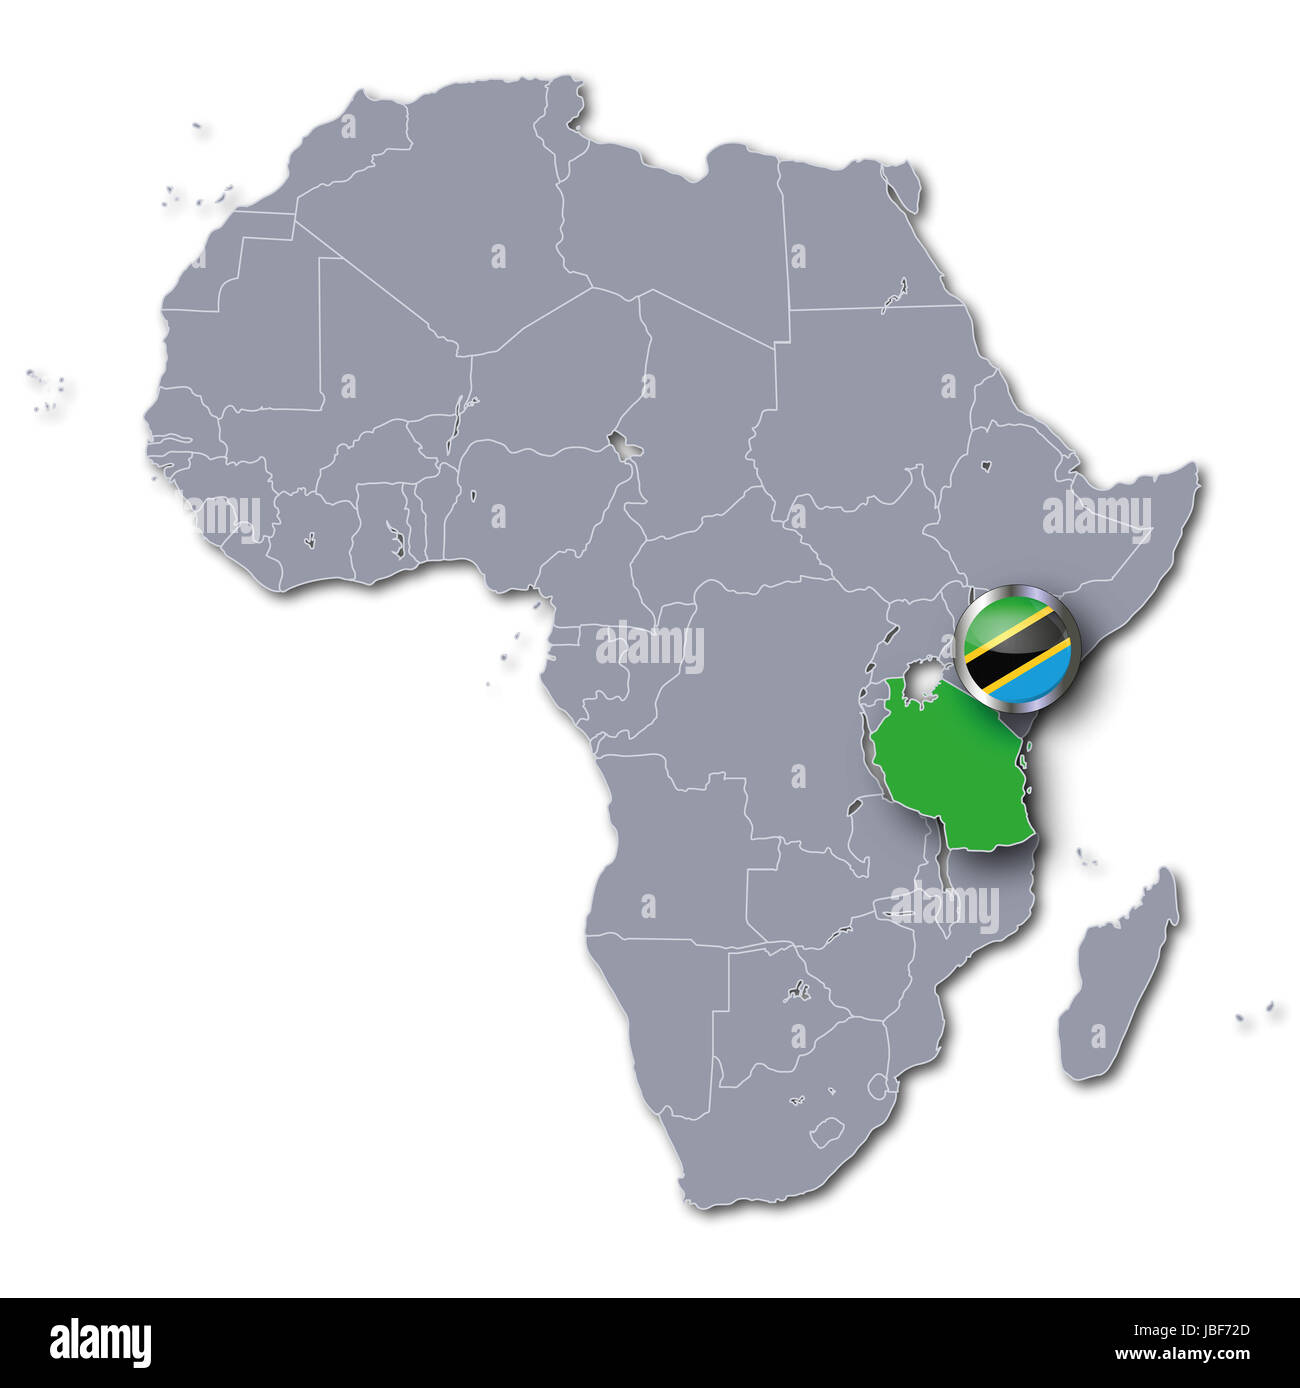 Image of: Africa Map With Tanzania Stock Photo Alamy